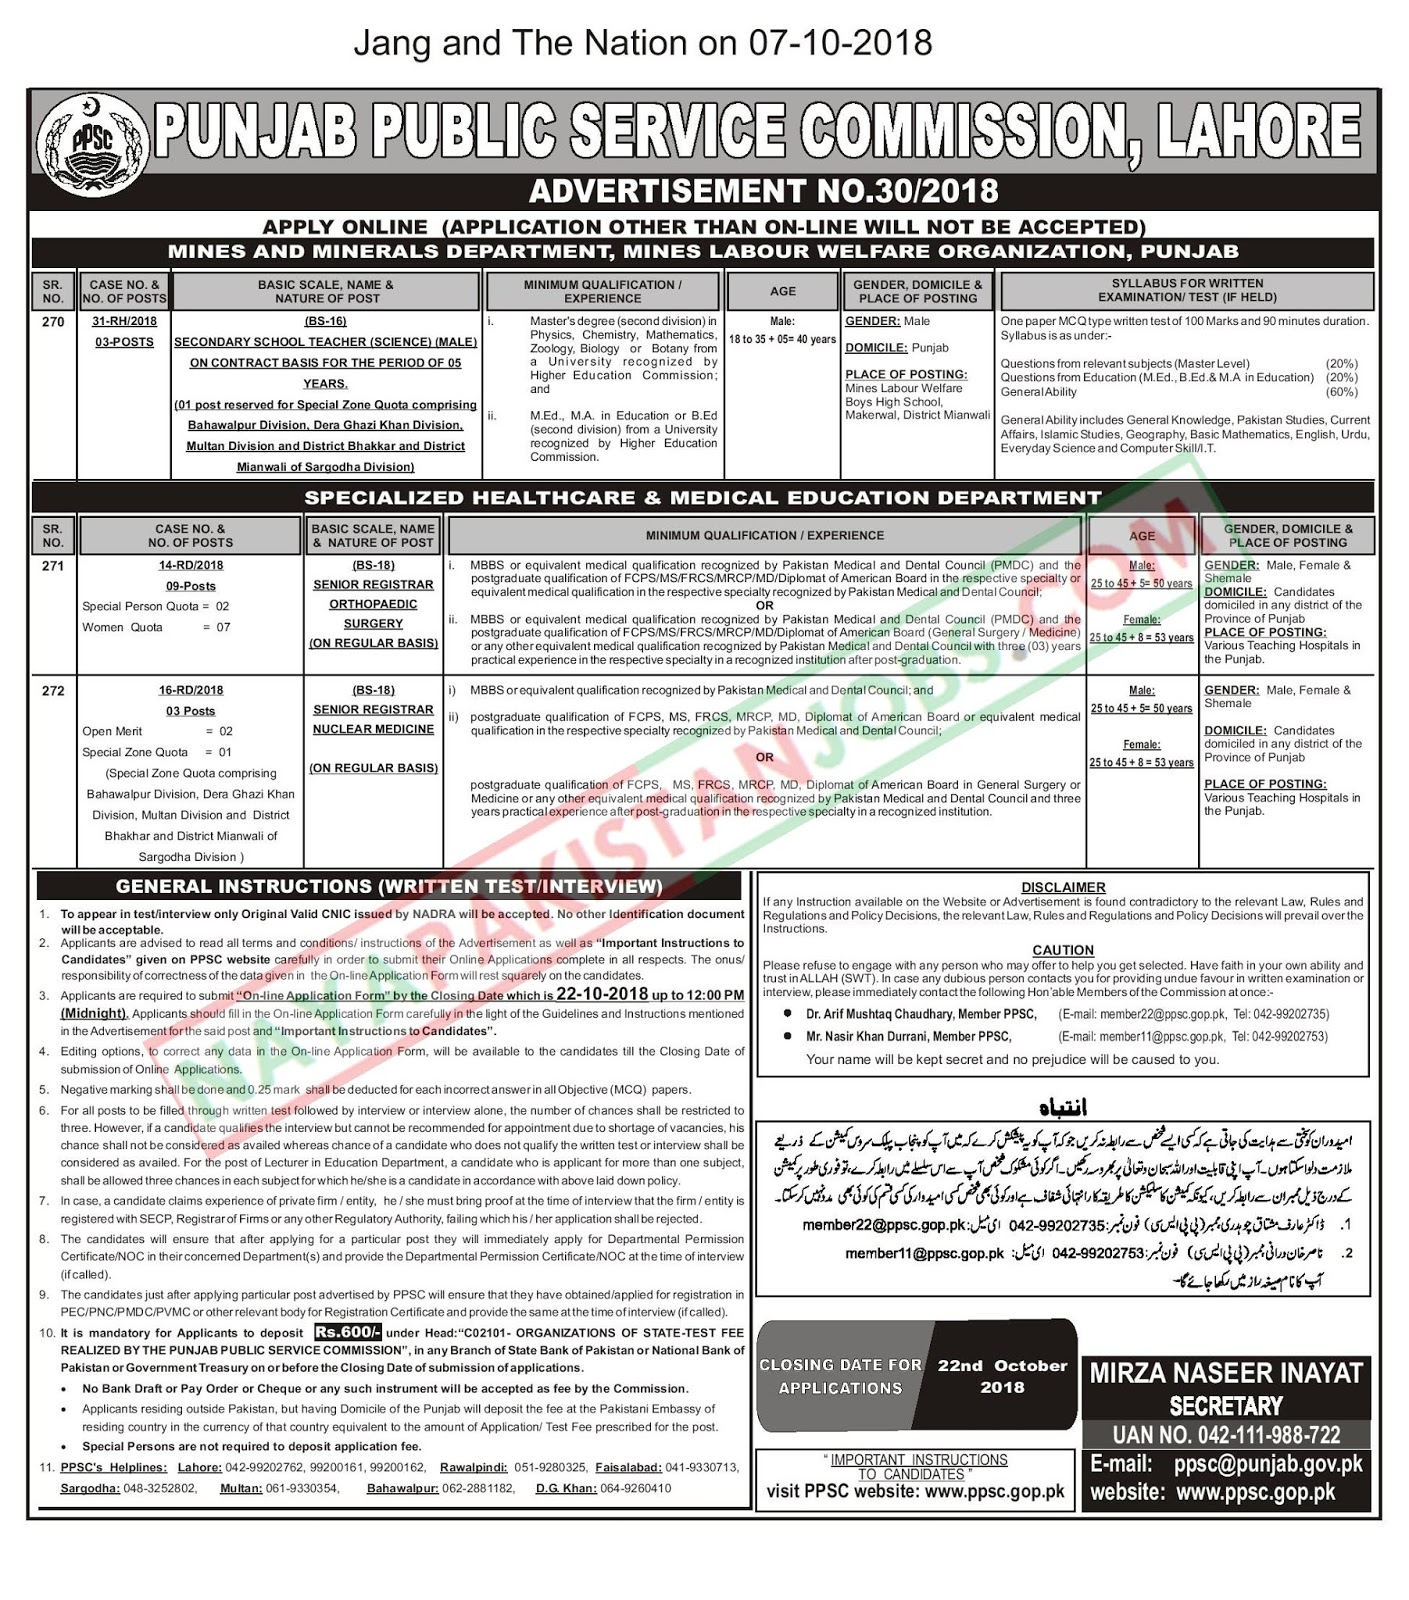 Latest Vacancies Announced in PPSC.GOP.PK Punjab Public Service Commission PPSC 8 October 2018 - Naya Pakistan